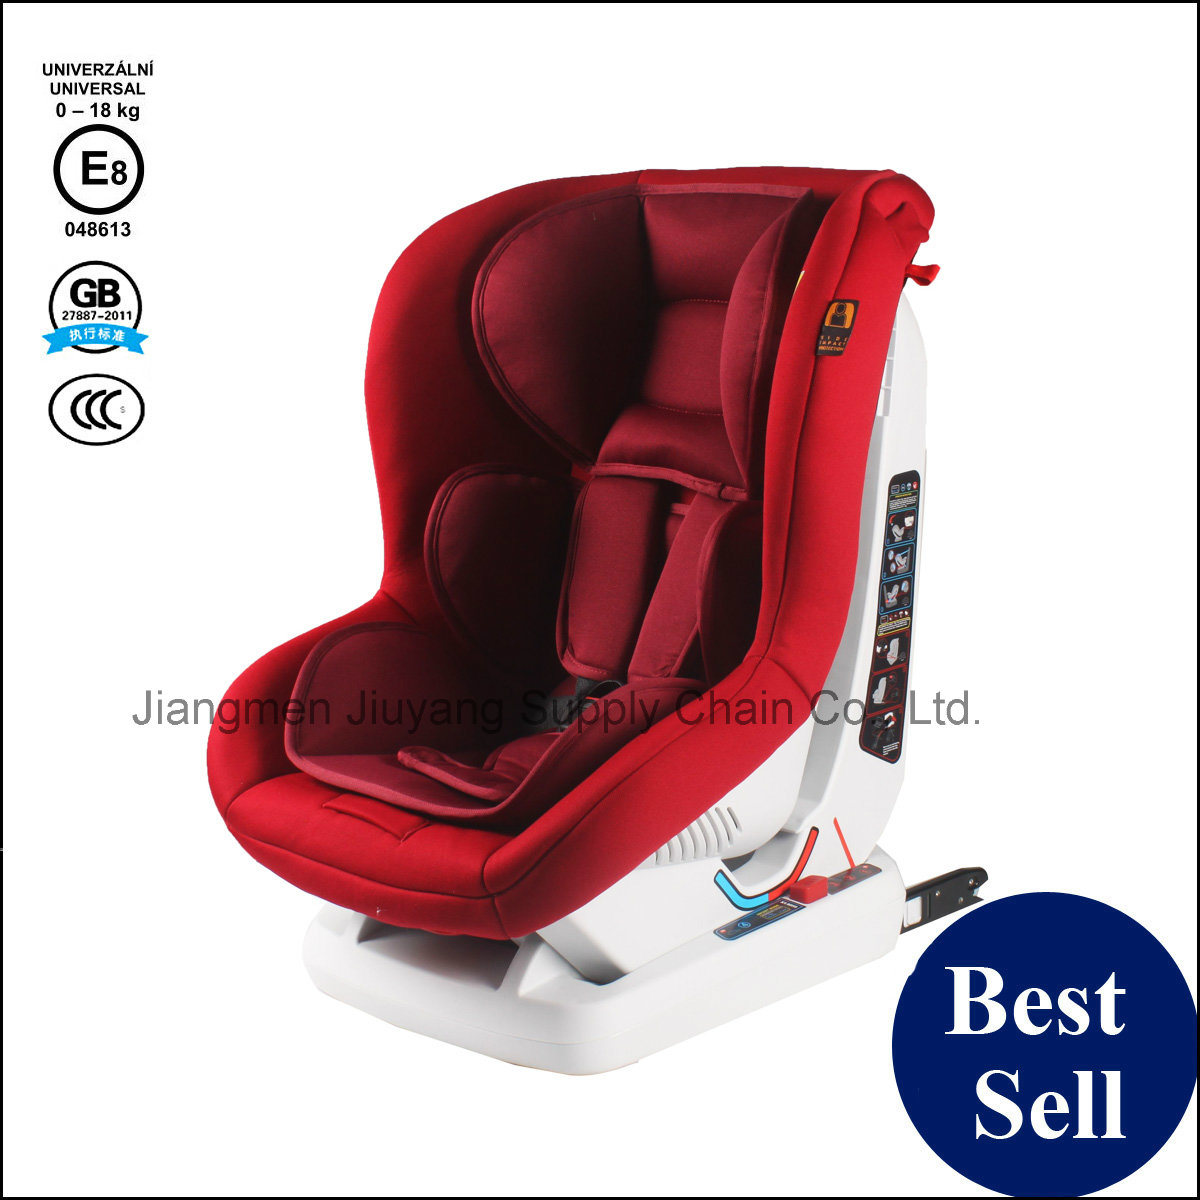 Baby Safety Car Seat with ECE GB 3c Certification for Newborn to 4 Years Child